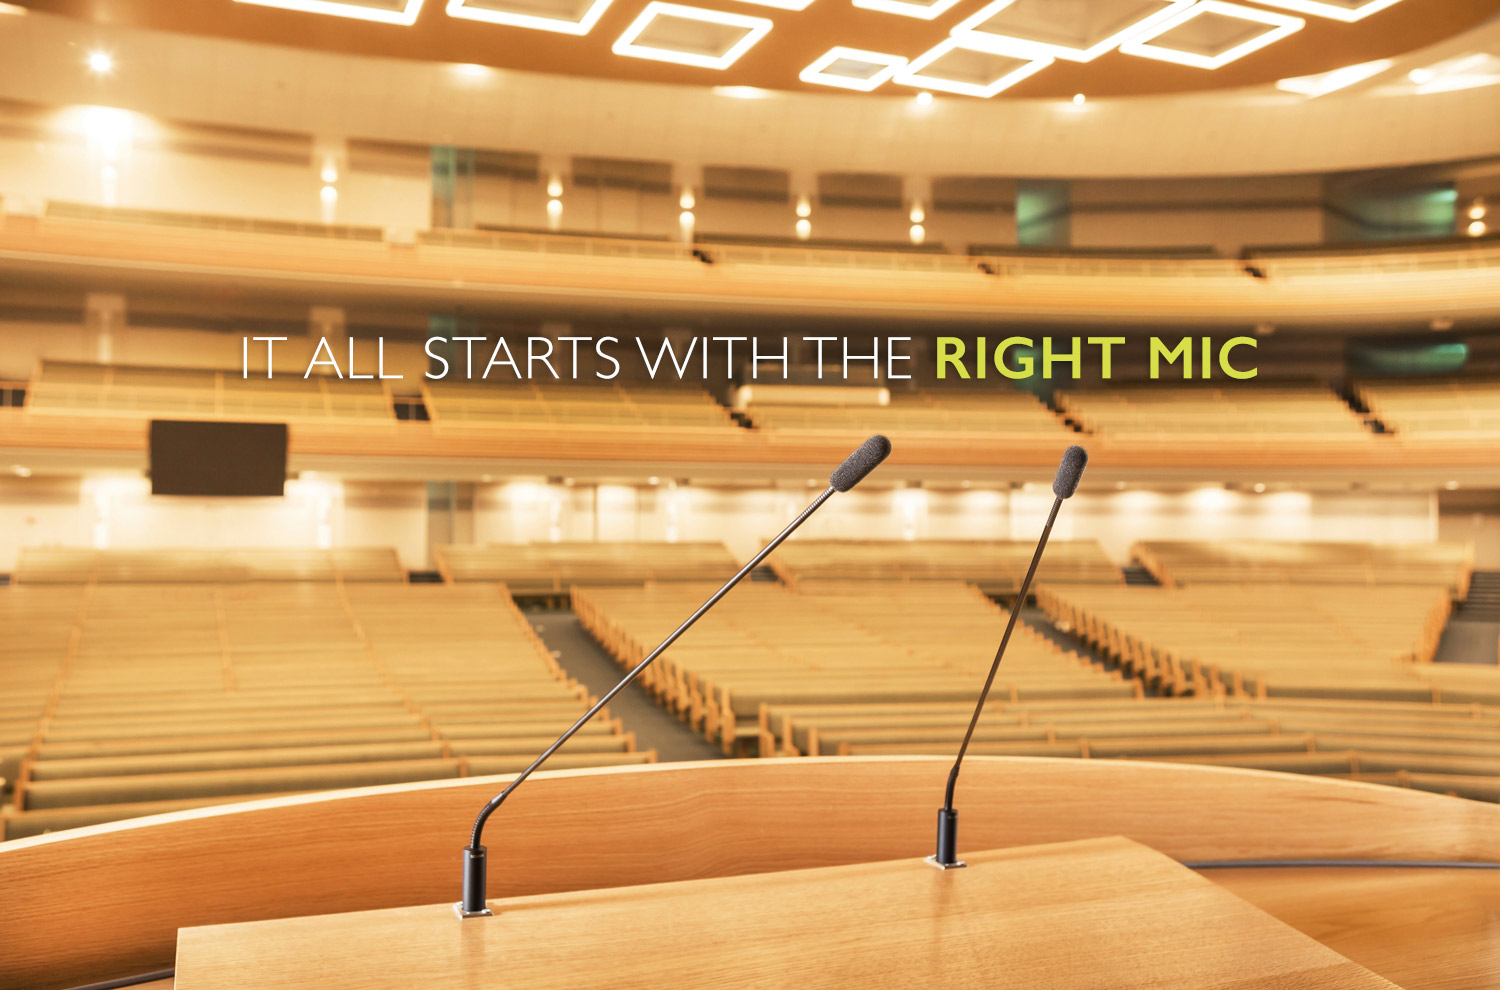 It all starts with the right mic.